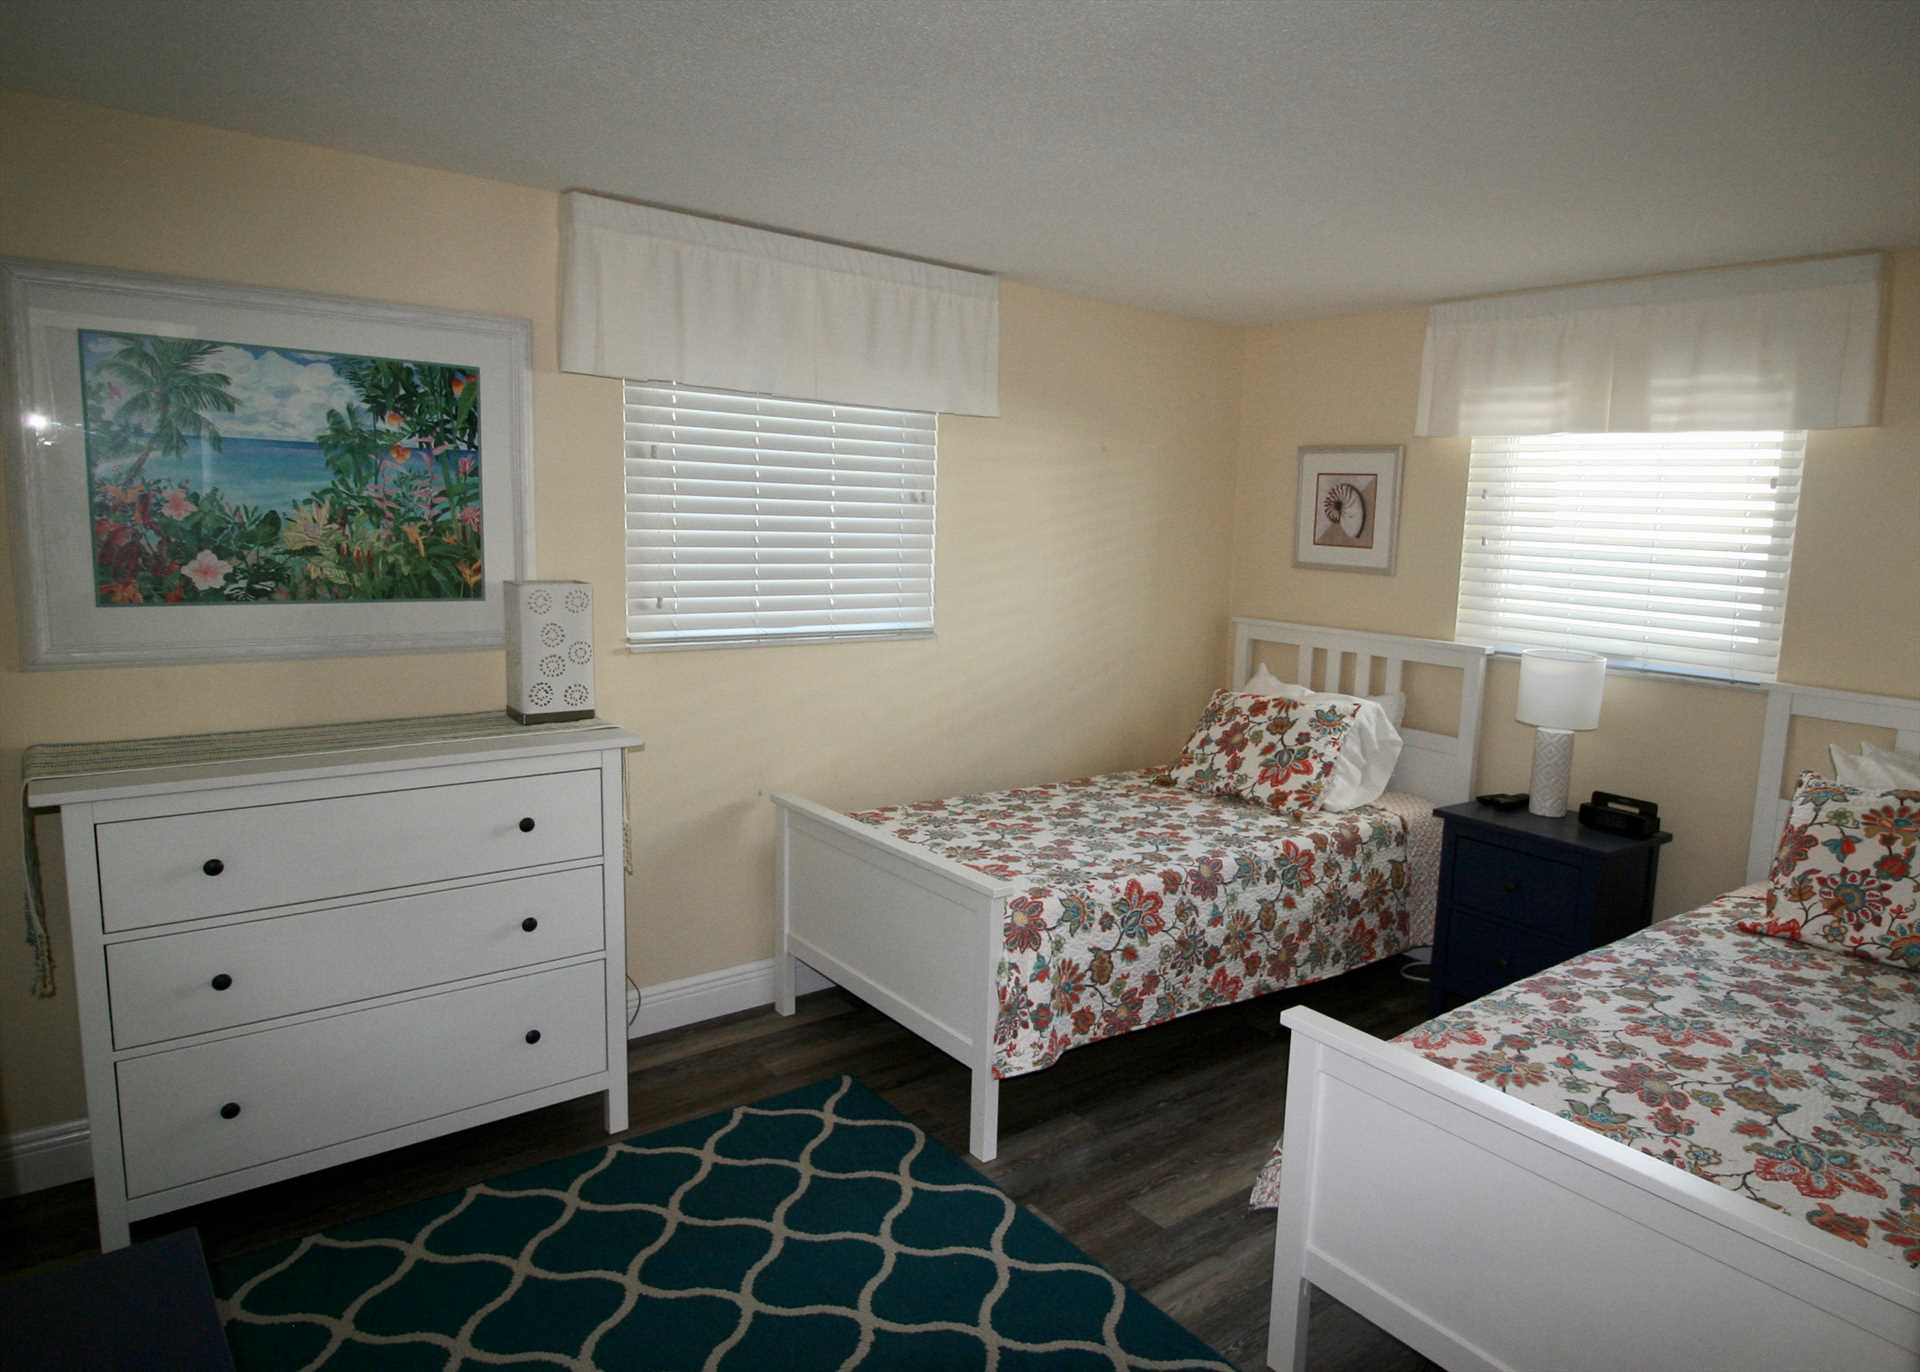 Guest accommodations